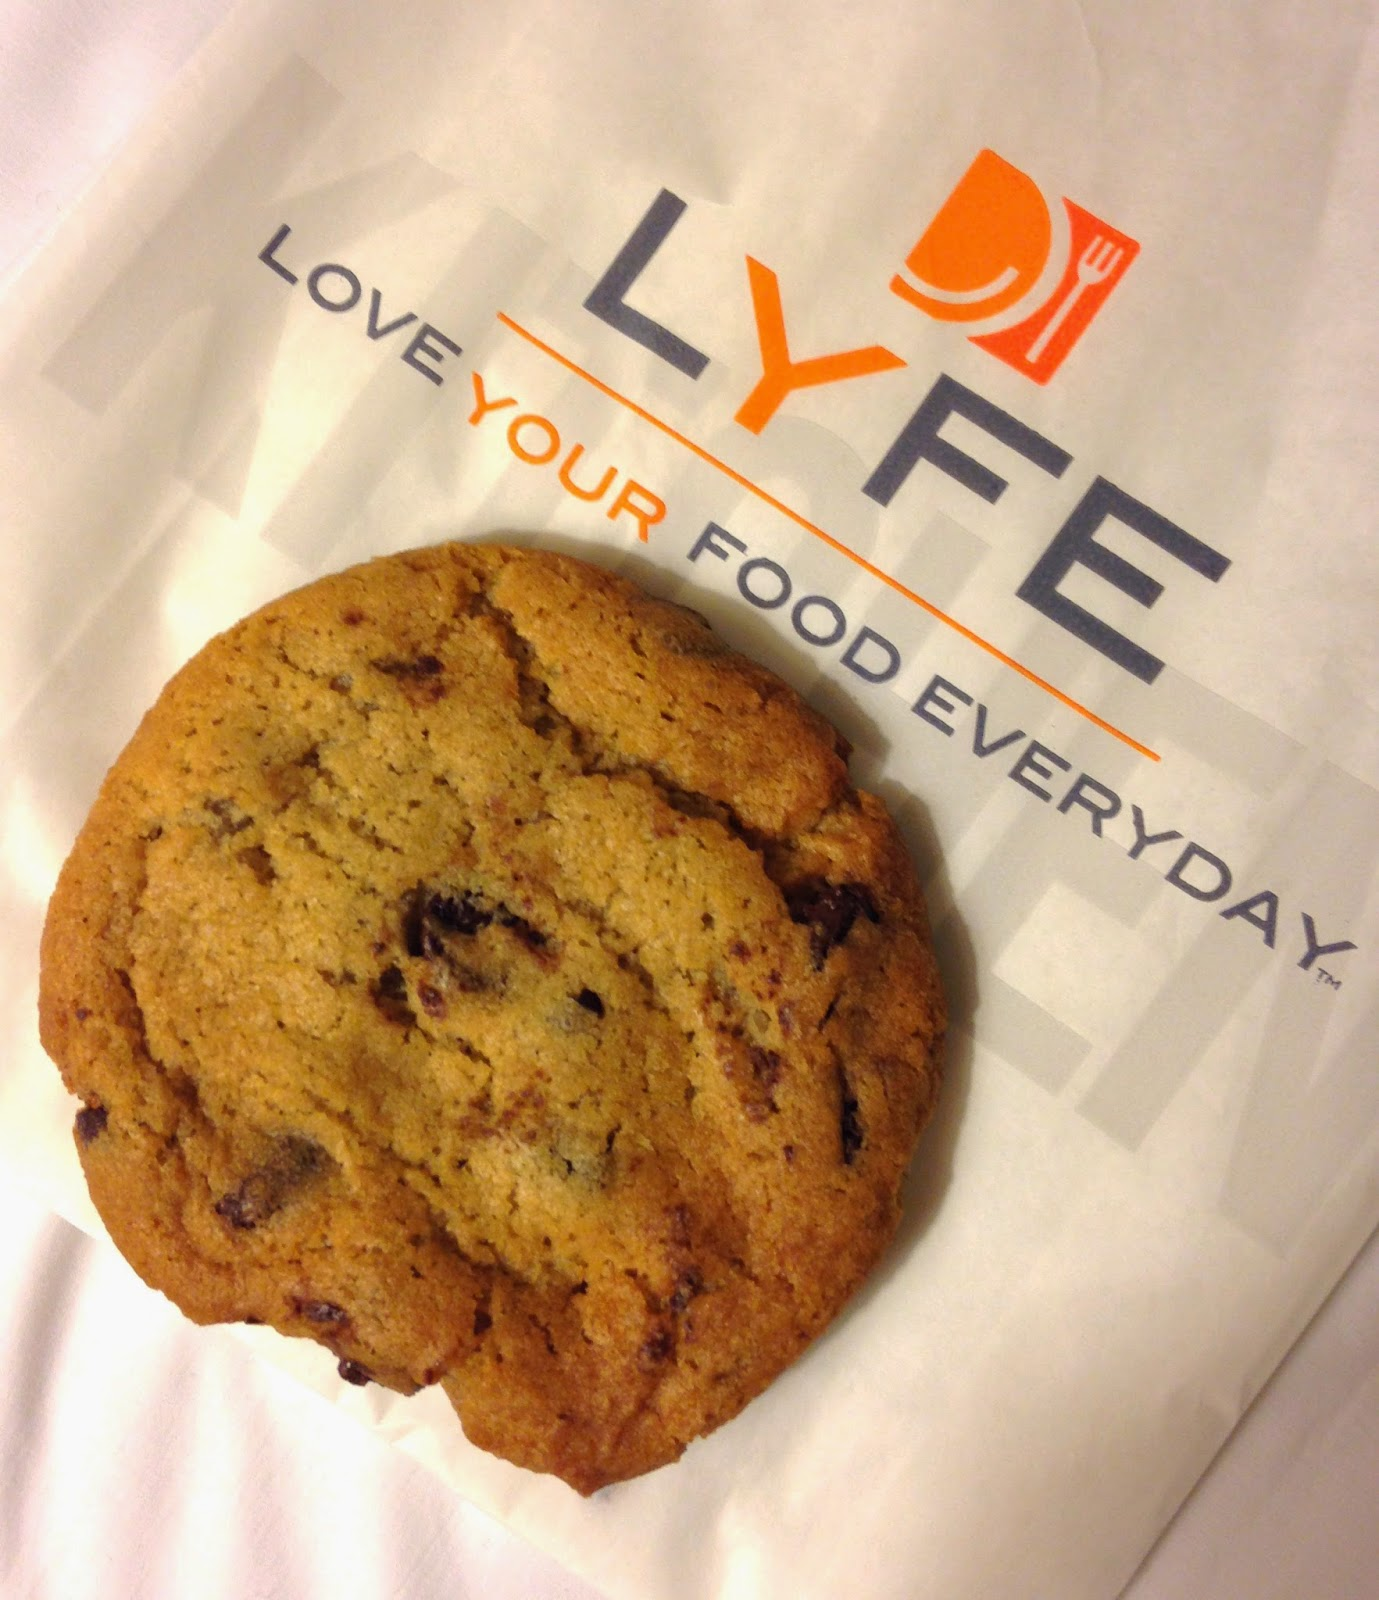 Vegan Chocolate Chip Cookie - LYFE Kitchen Chicago Veega